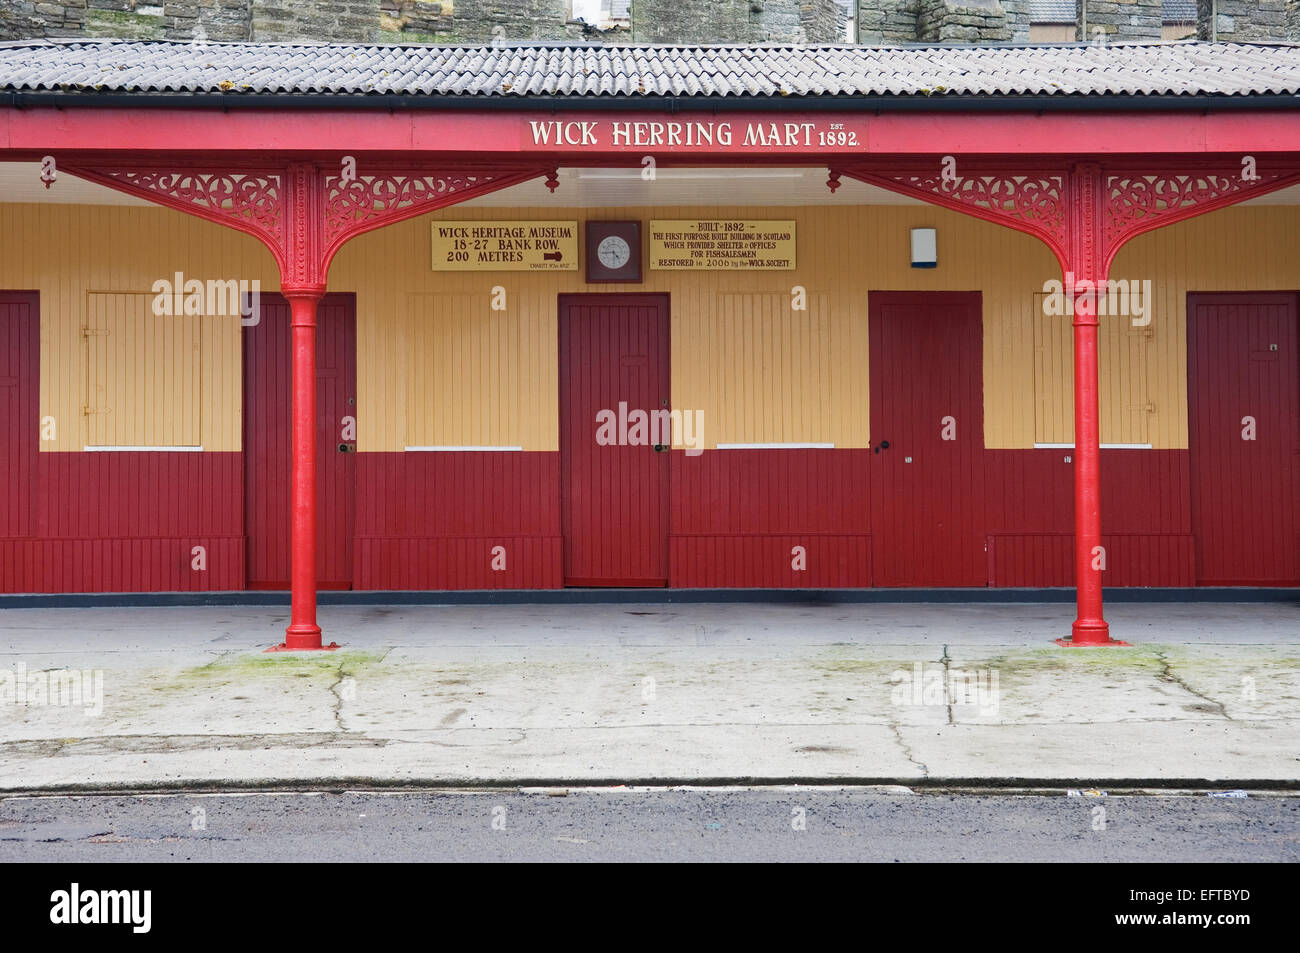 Wick Herring Mart - restored building at Wick harbour, Caithness. - Stock Image